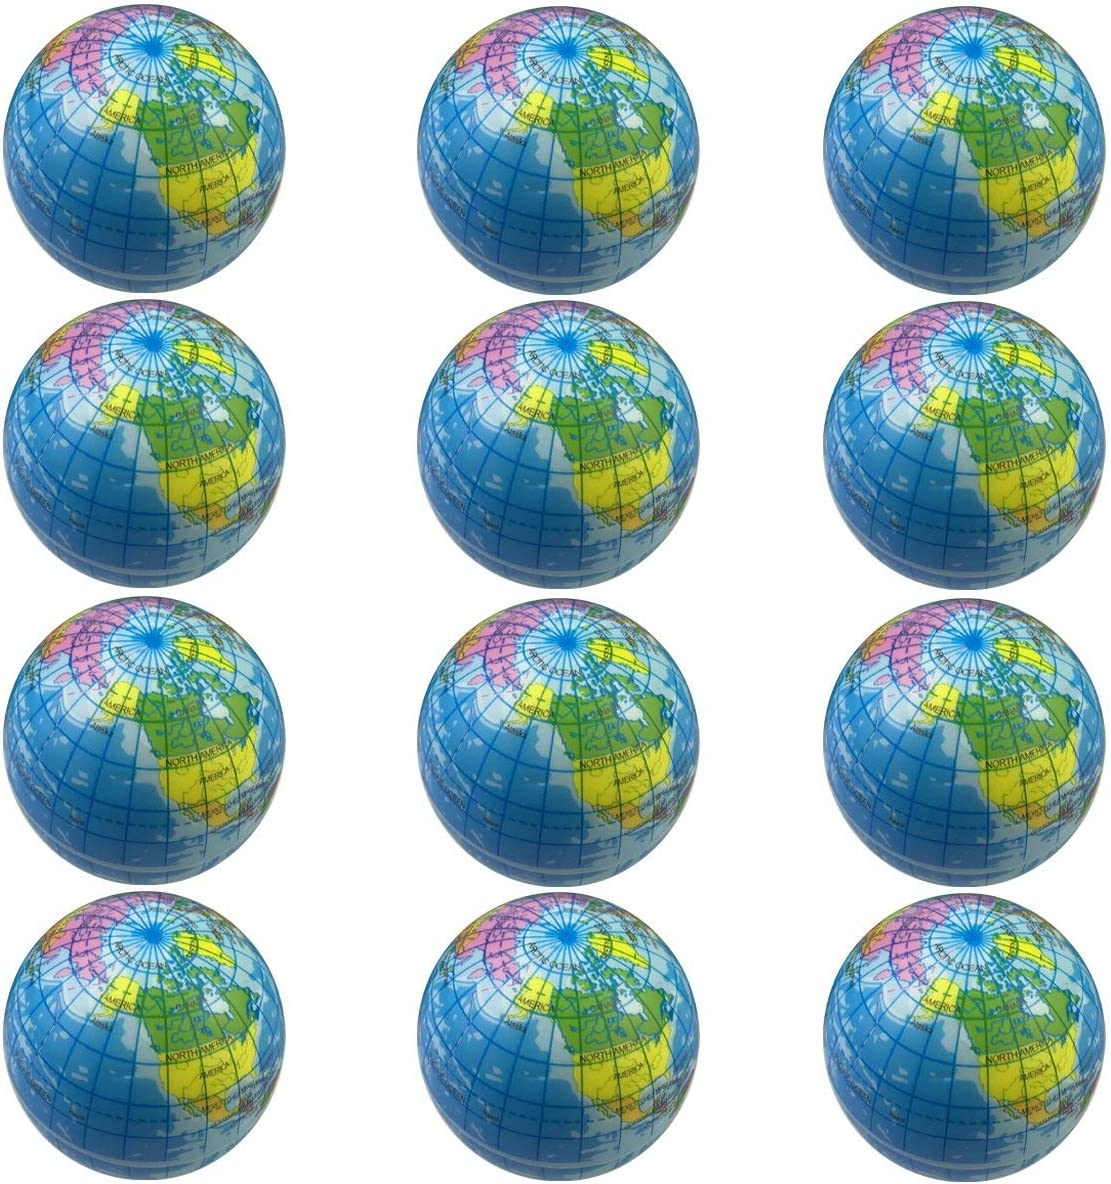 12pcs Squeeze Globe Hand Exercise Stress Relief Ball World Map Earth Kid Toy